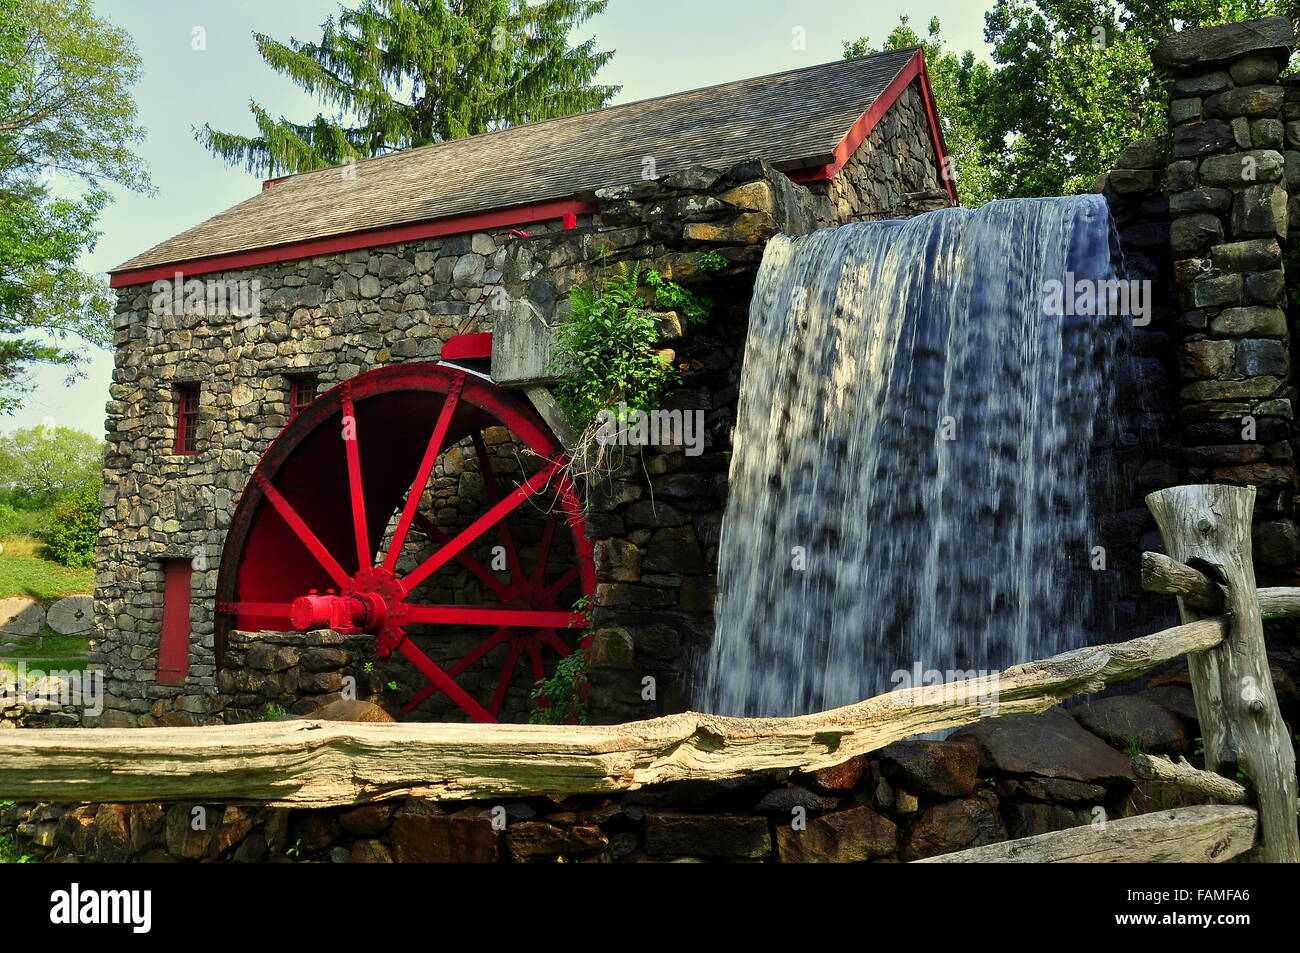 Sudbury, Massachusetts:  The Old Stone Grist Mill with water wheel and cascade still grinds flour for nearby Wayside - Stock Image